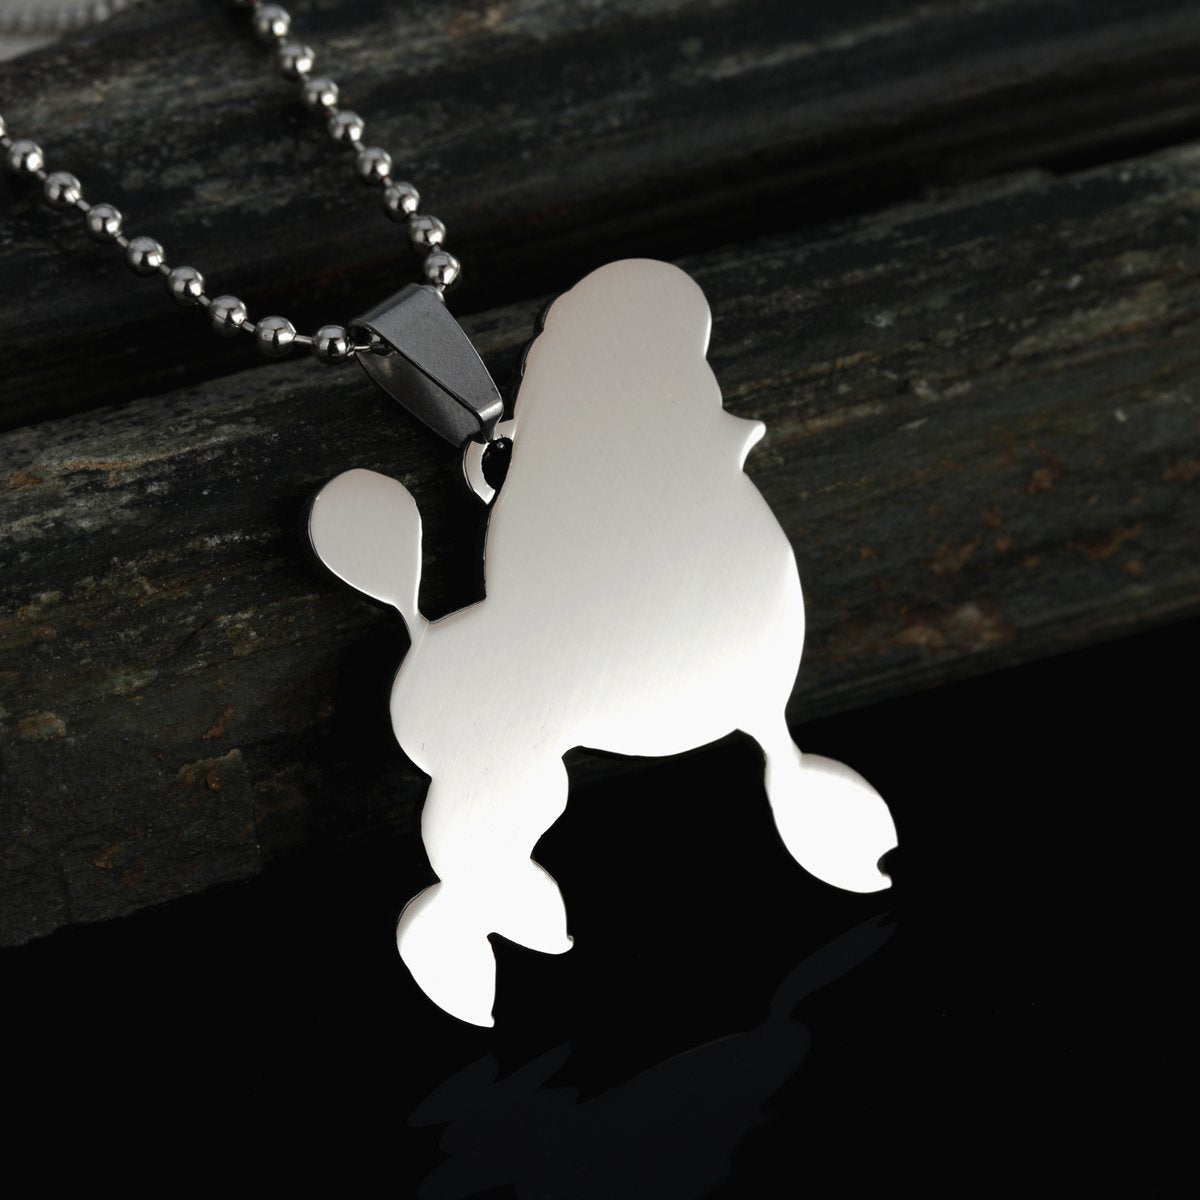 Stainless Steel Giant Miniature Standard Toy Poodle Silhouette Pet Dog Tag Breed Collar Charm Pendant Necklace